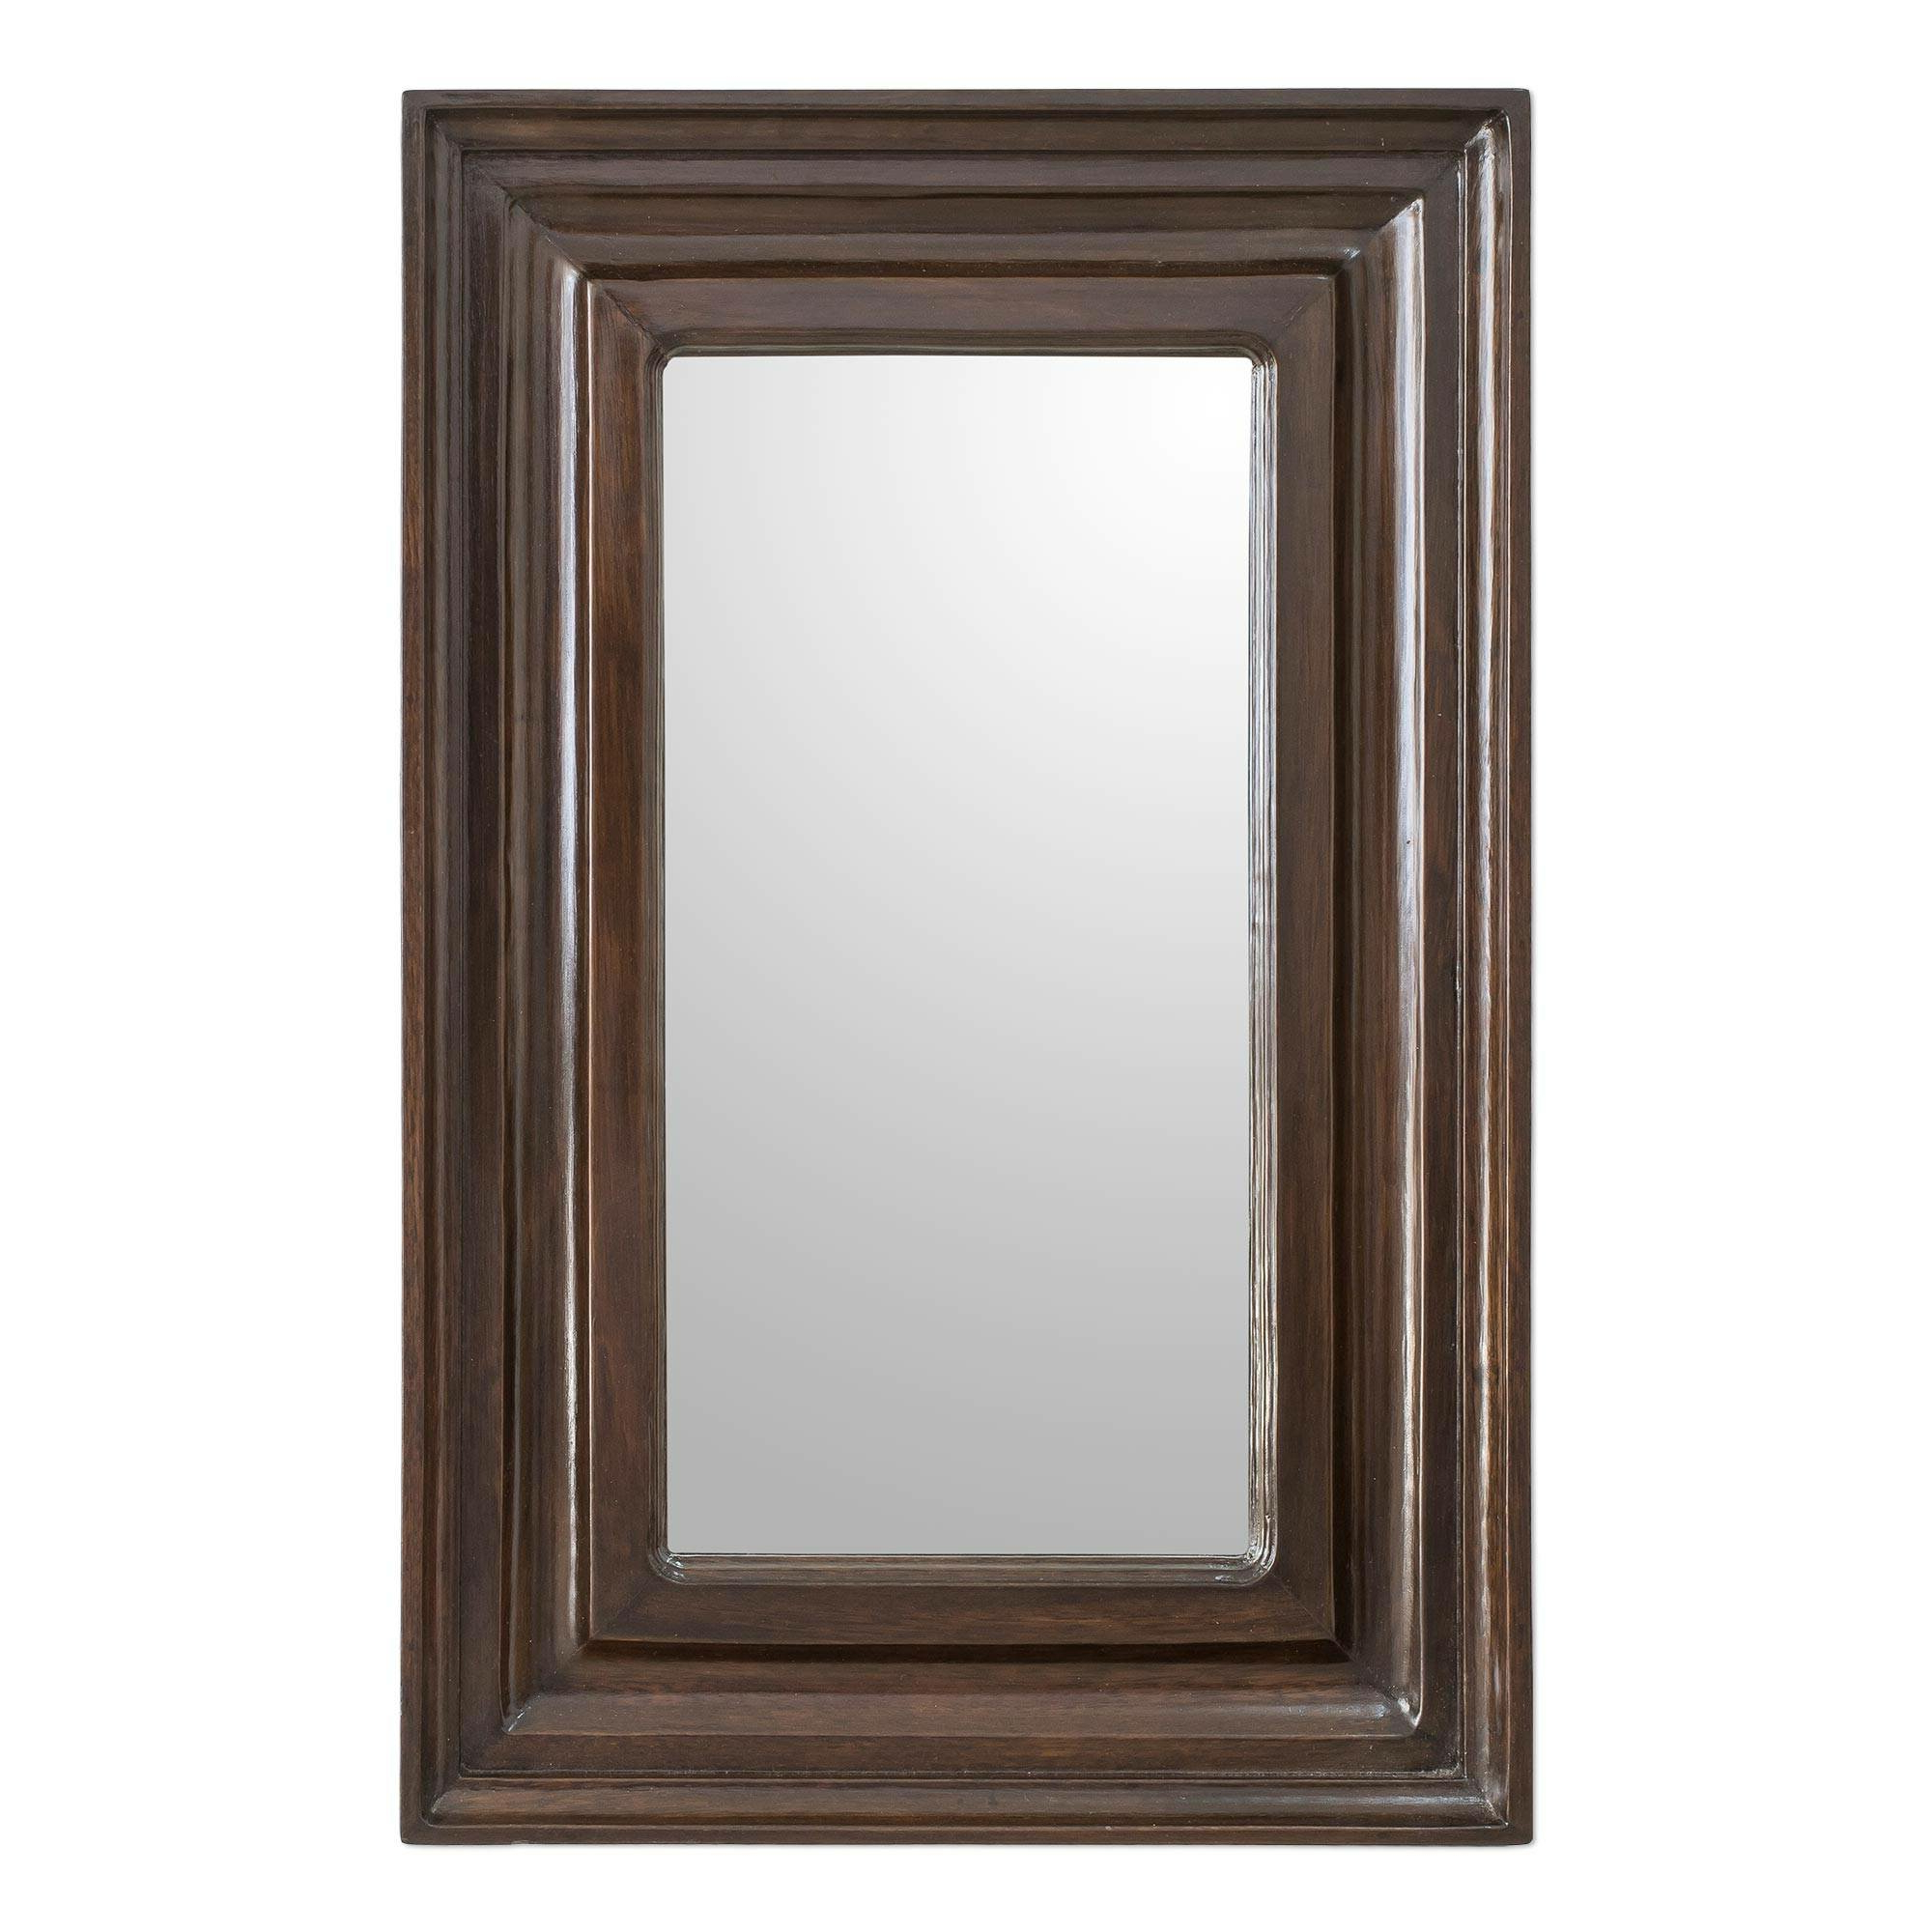 Reflection Wall Mirrors In Favorite Wagar Simple Reflection Wood Rustic Wall Mirror (View 13 of 20)